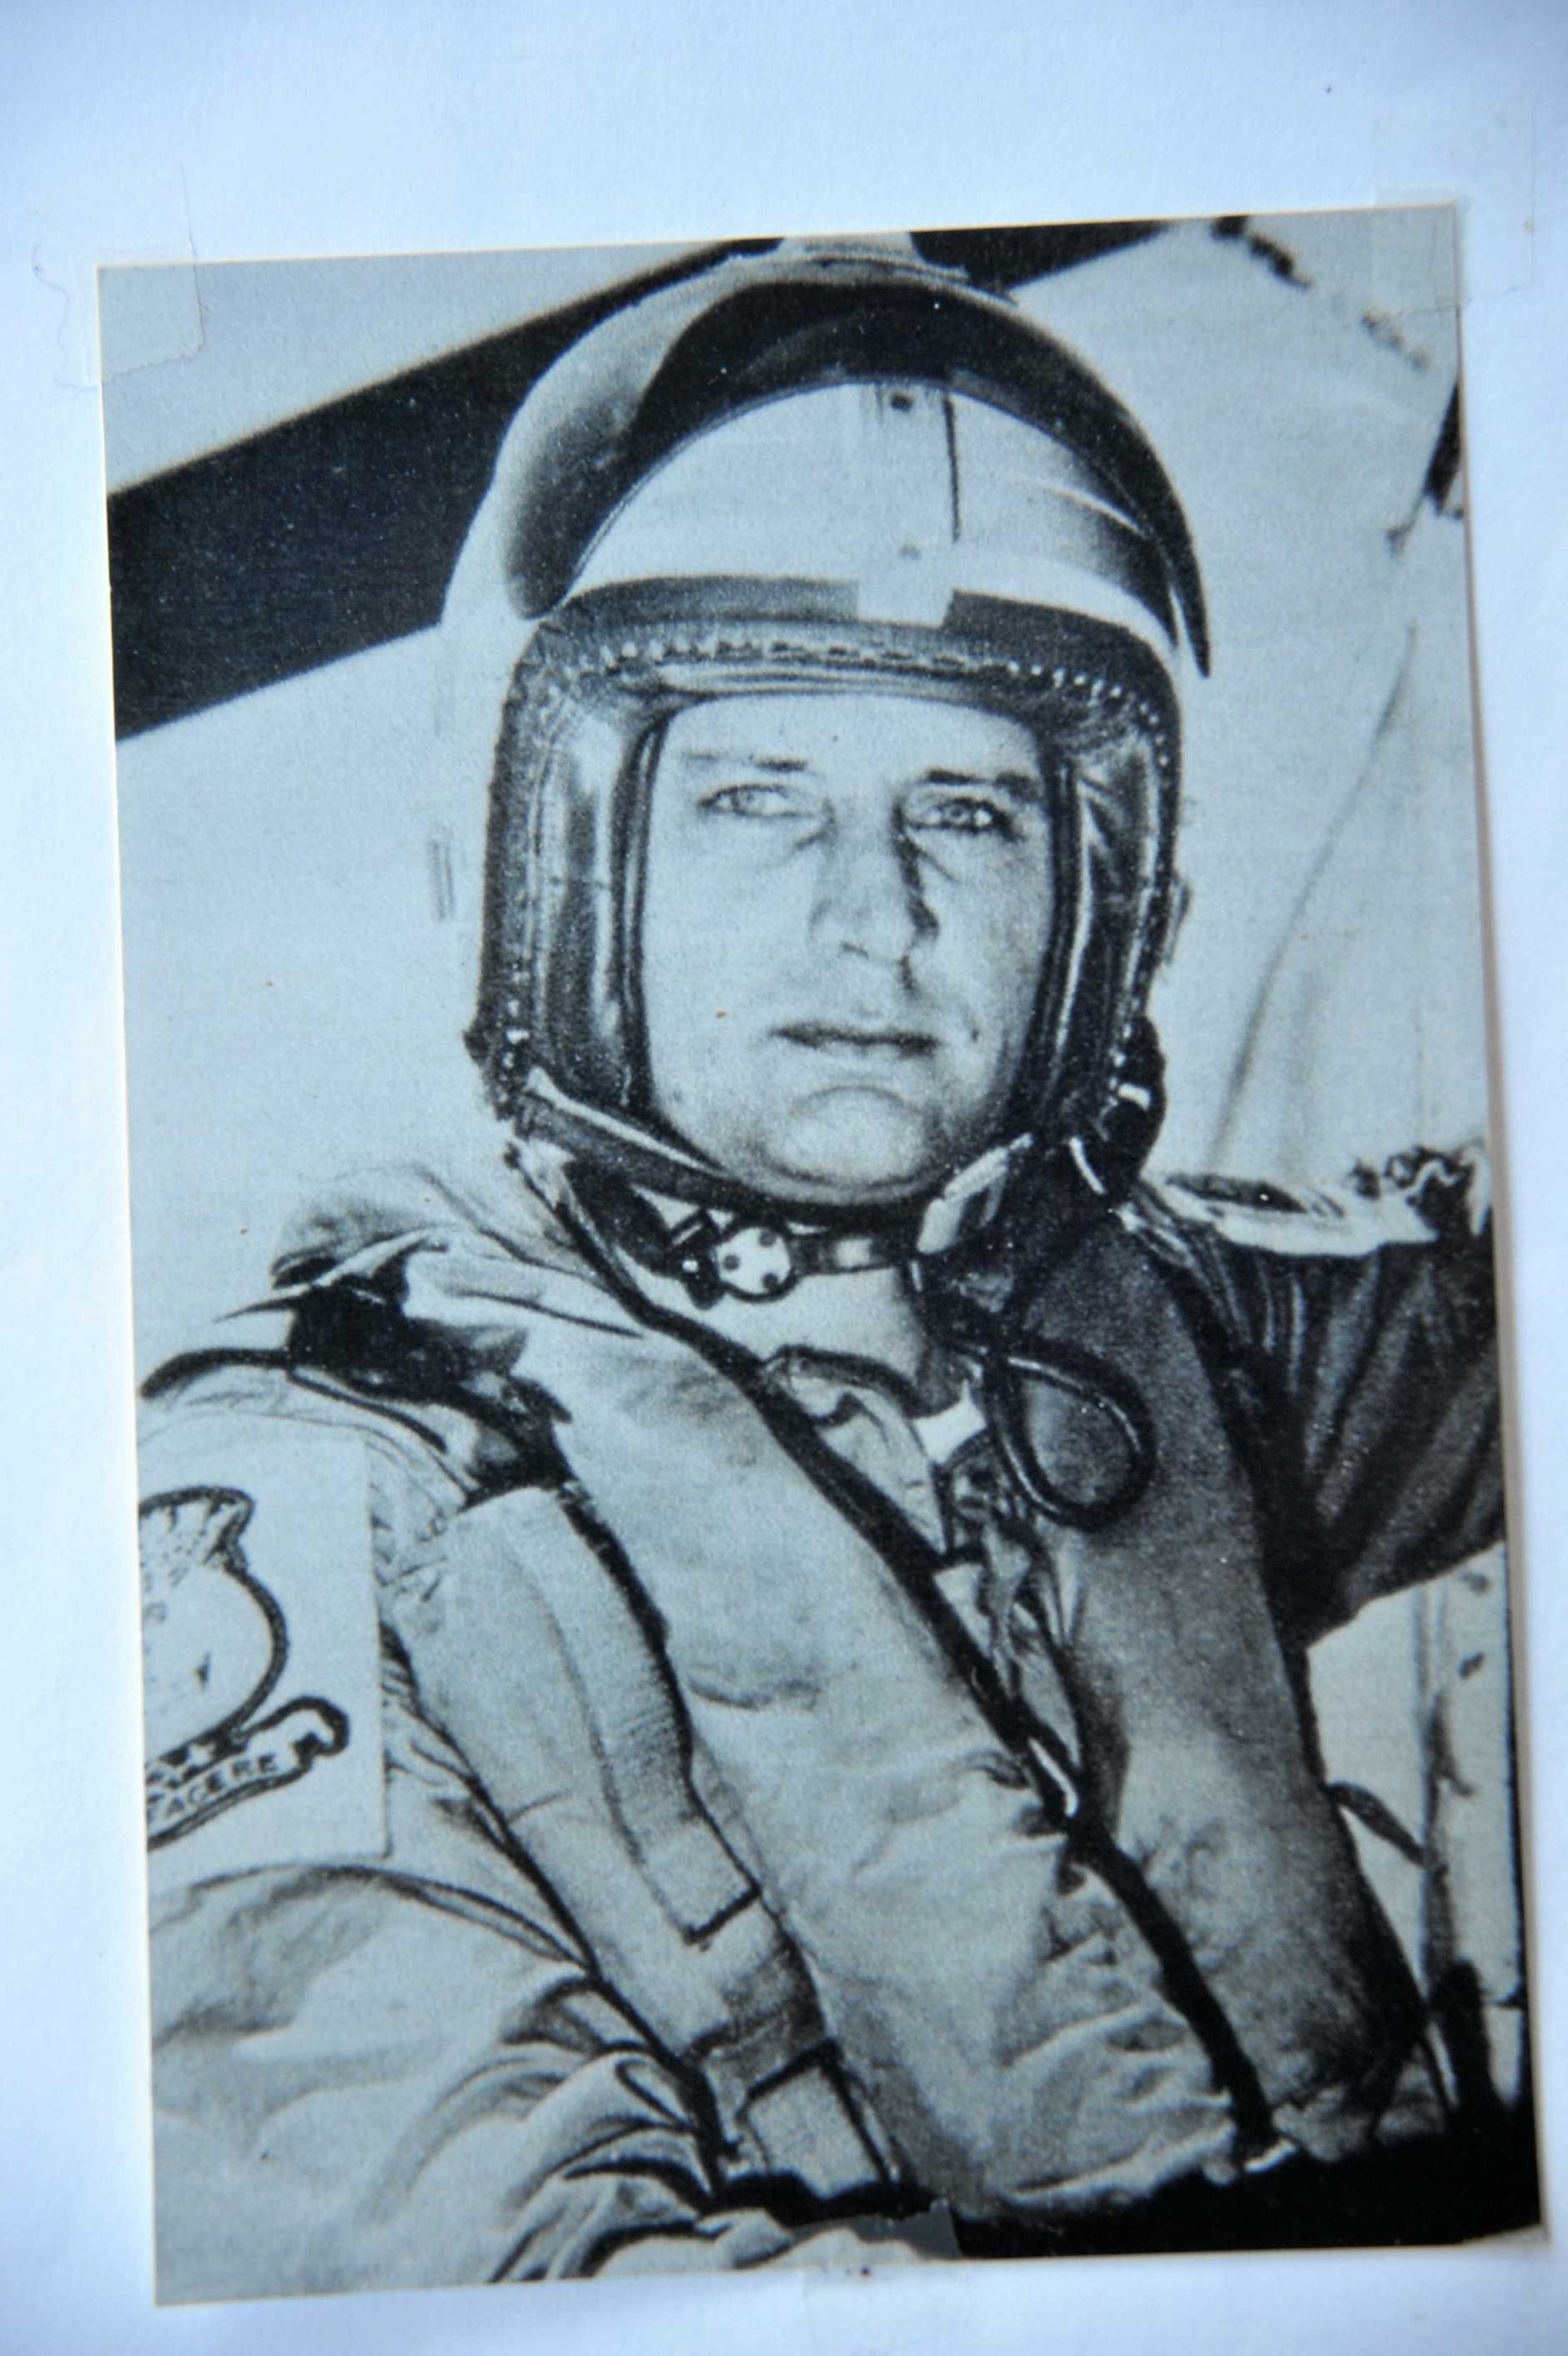 Pat Vickers in his chopper in 1957, a year before he was killed.